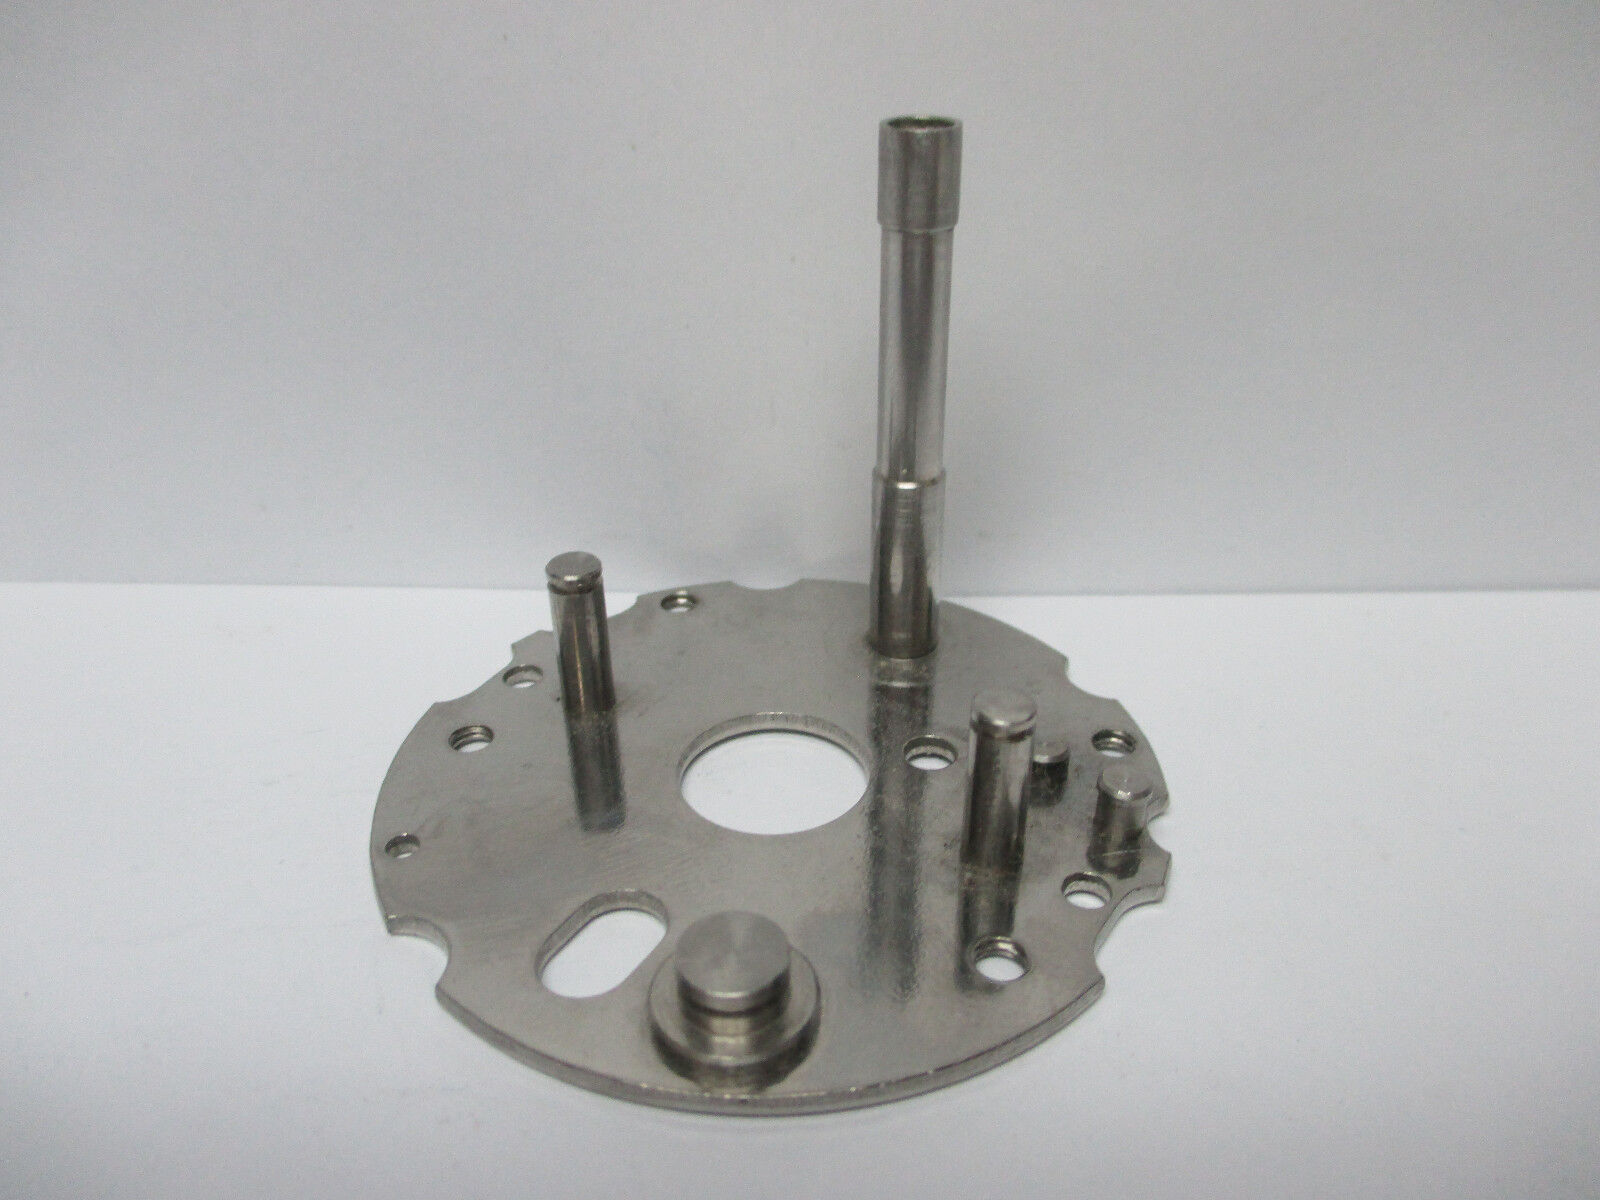 USED NEWELL CONVENTIONAL REEL PART - S 220 5 - Bridge  A